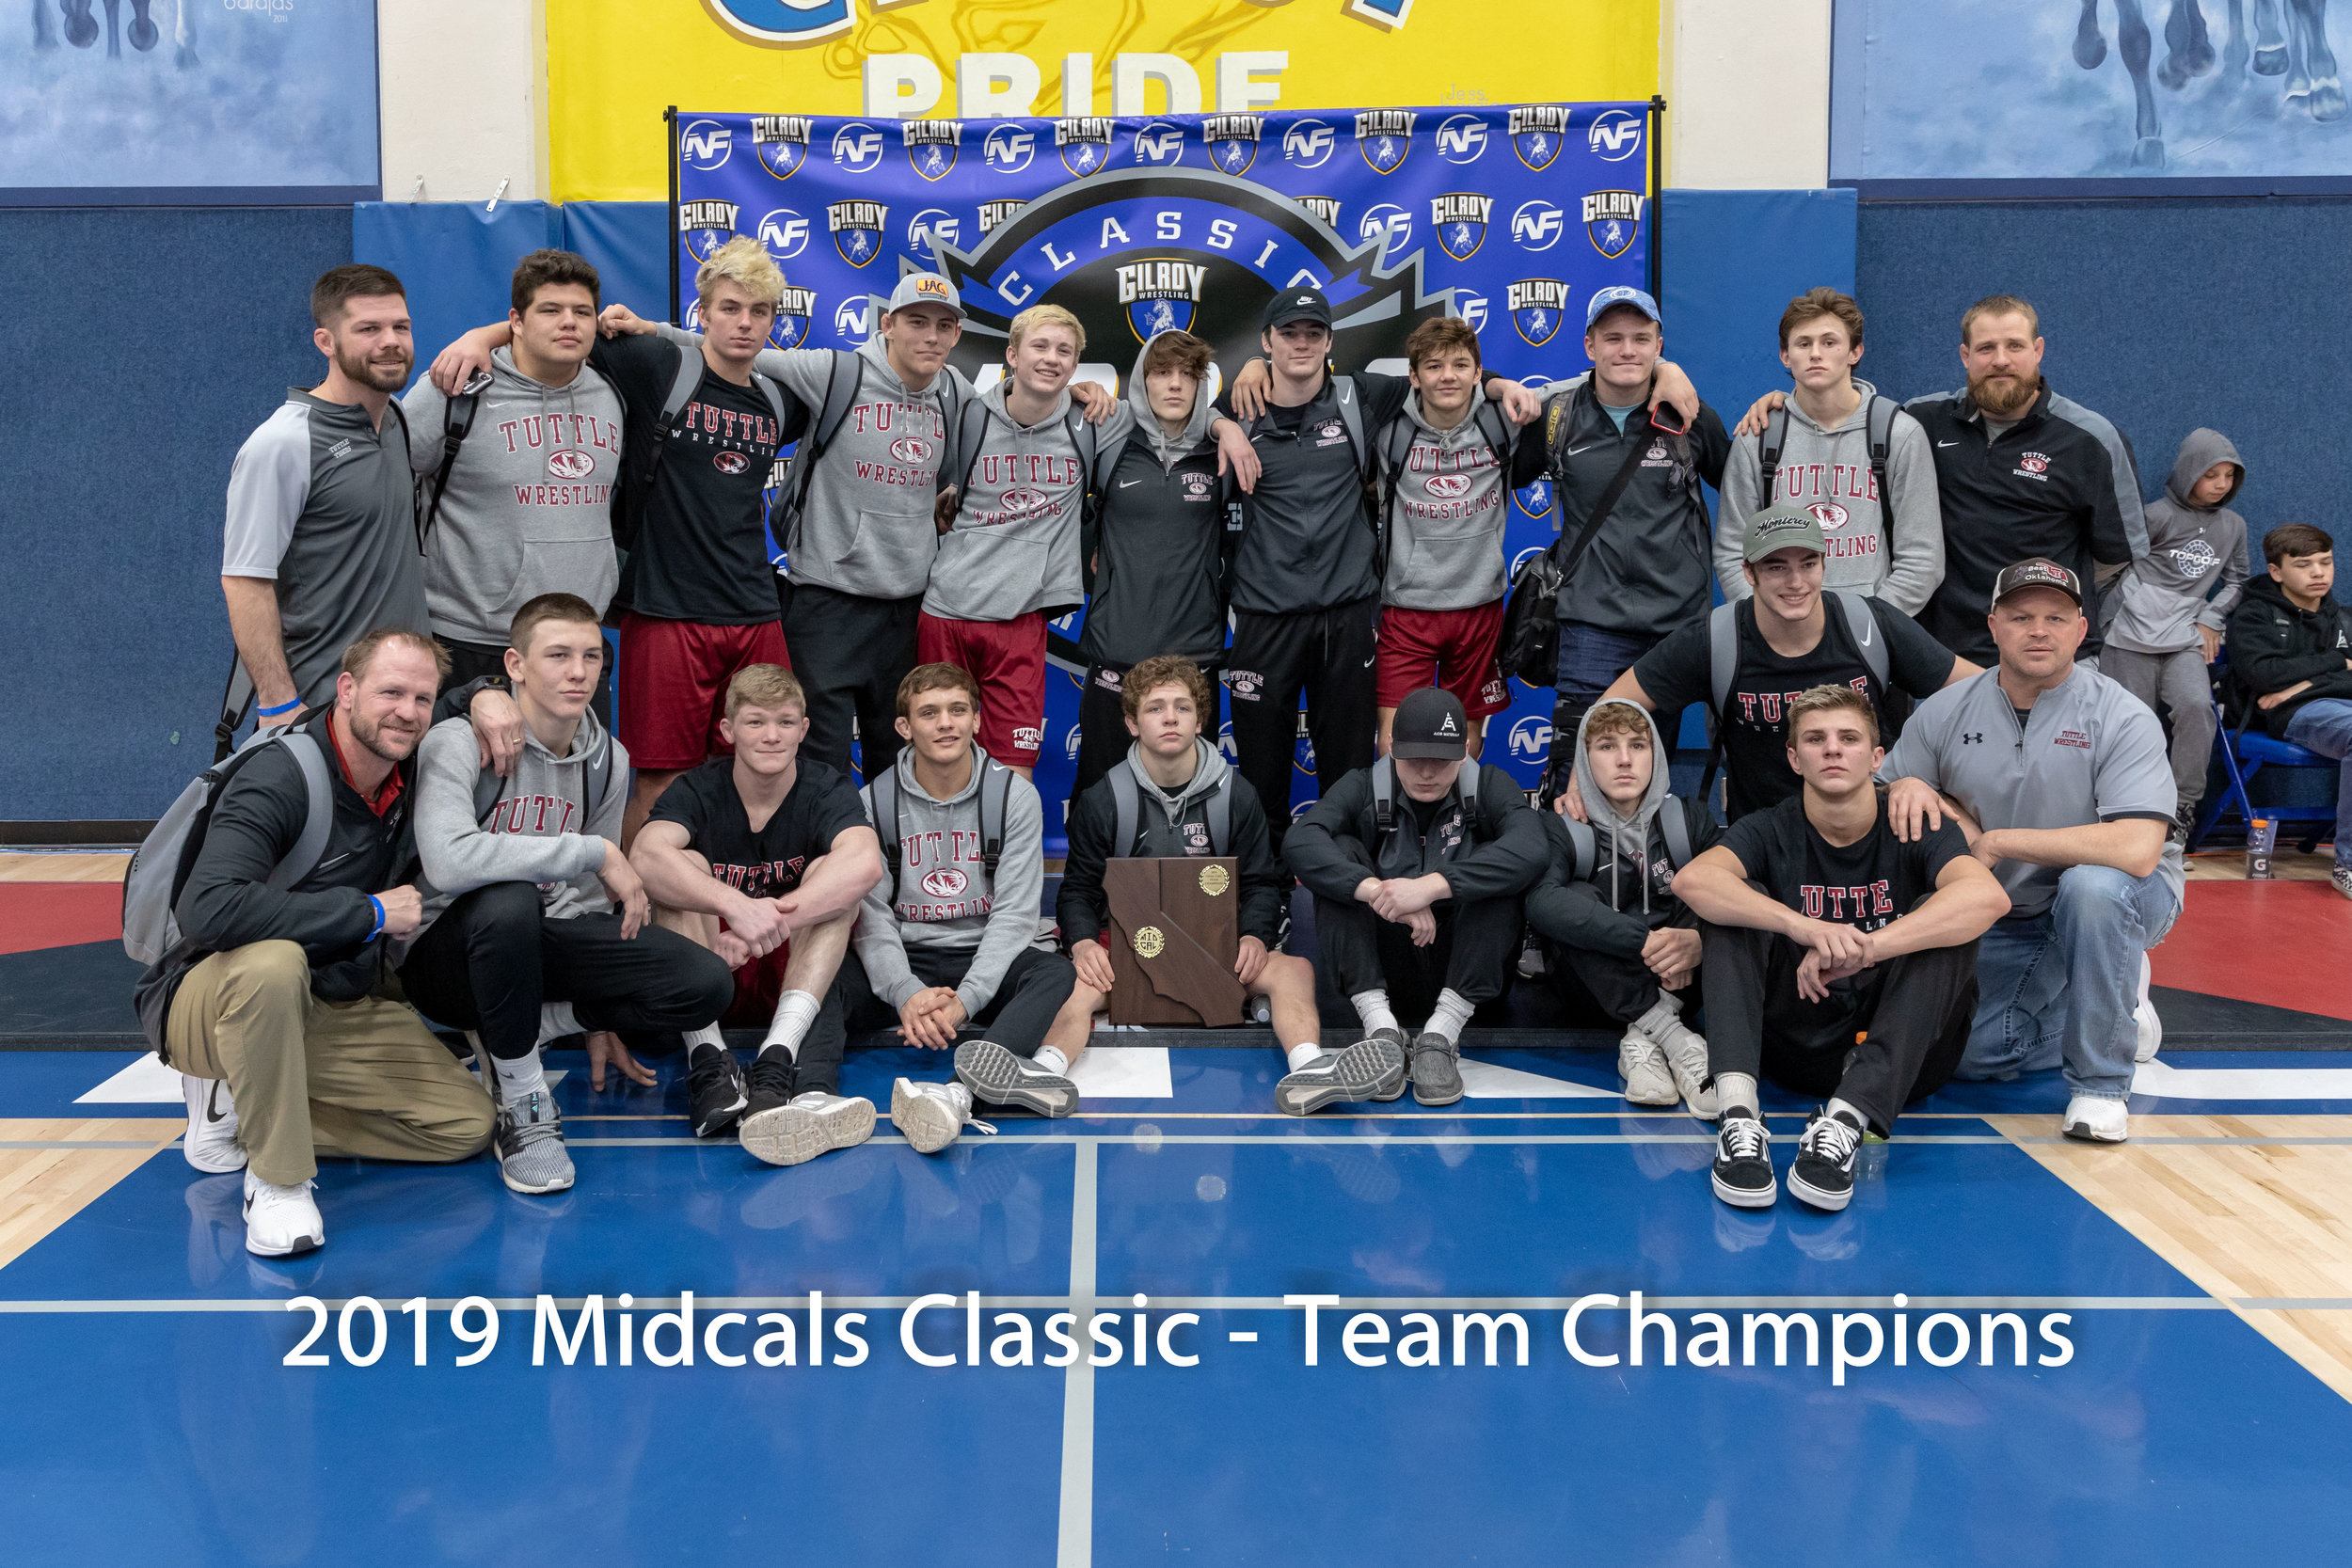 Tuttle Oklahoma is the 2019 MidCals Team Champions